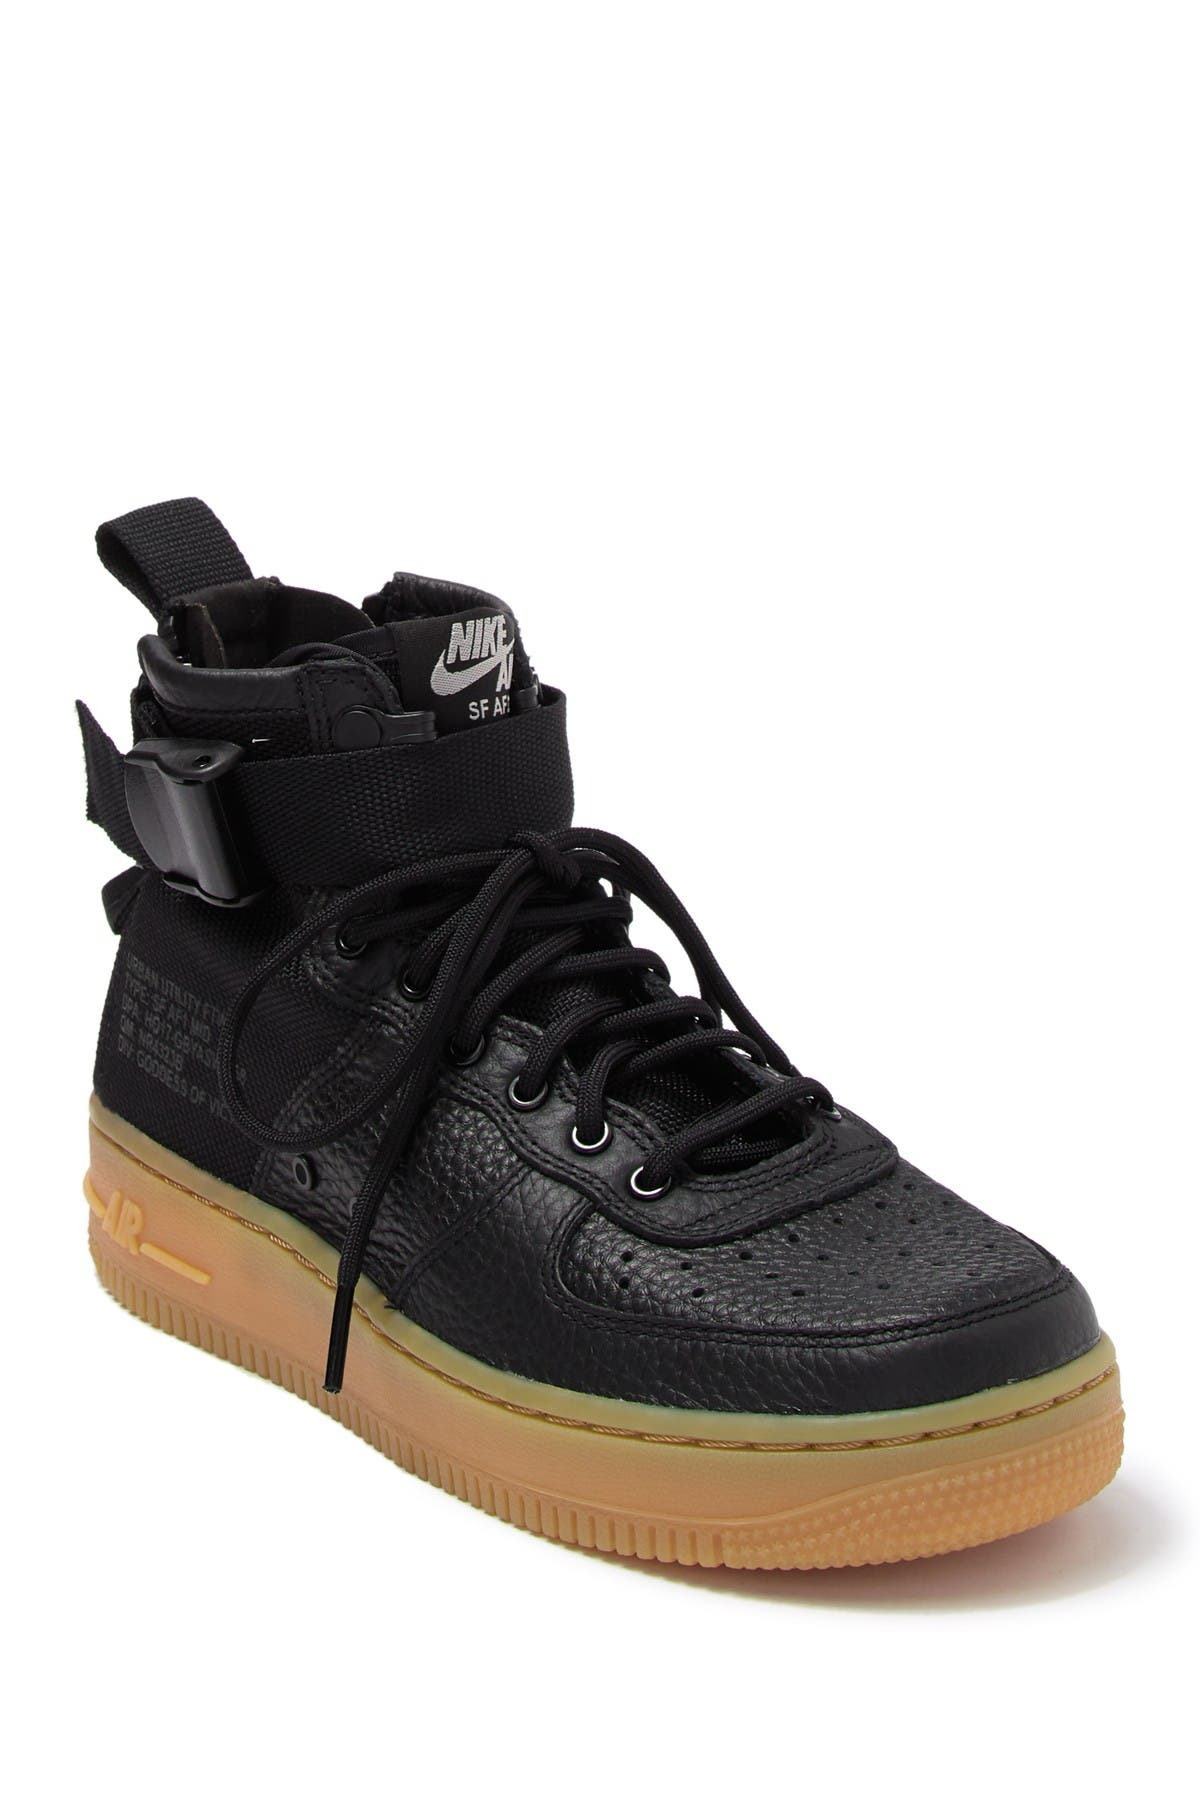 Image of Nike SF AF1 Mid Basketball Sneaker